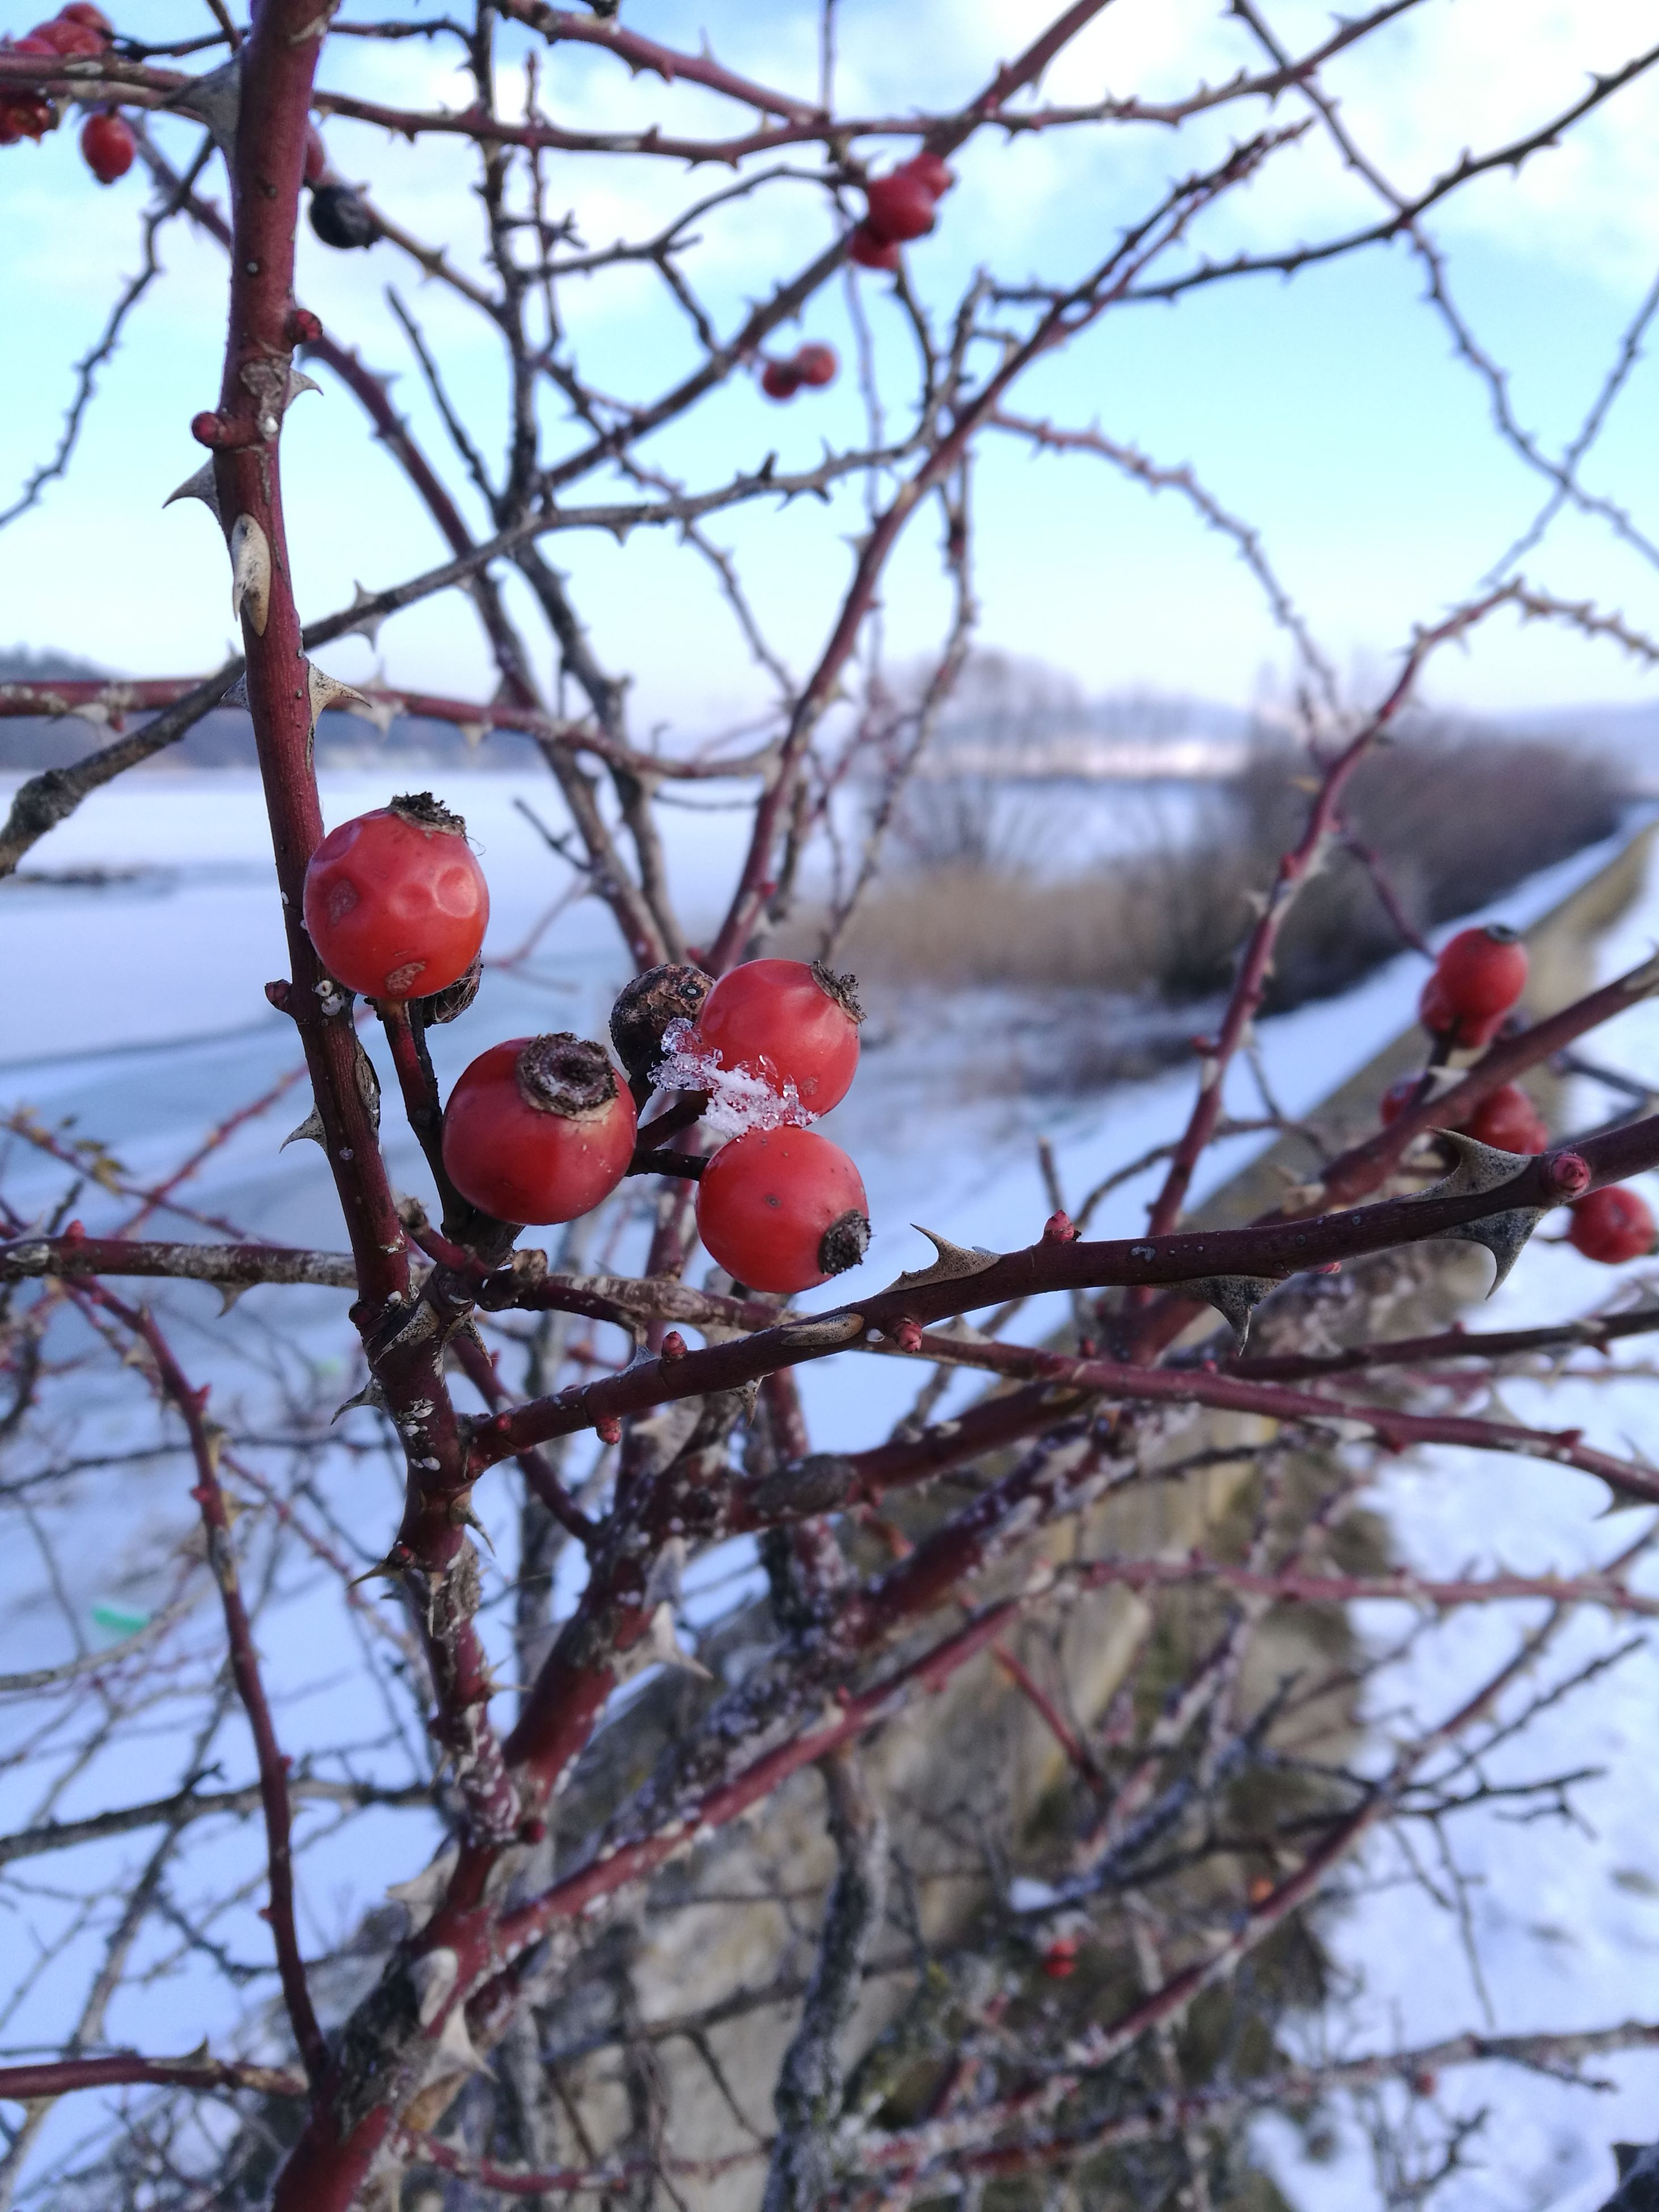 fruit, red, tree, nature, food and drink, winter, cold temperature, growth, rose hip, branch, no people, day, outdoors, close-up, snow, bare tree, food, freshness, beauty in nature, sky